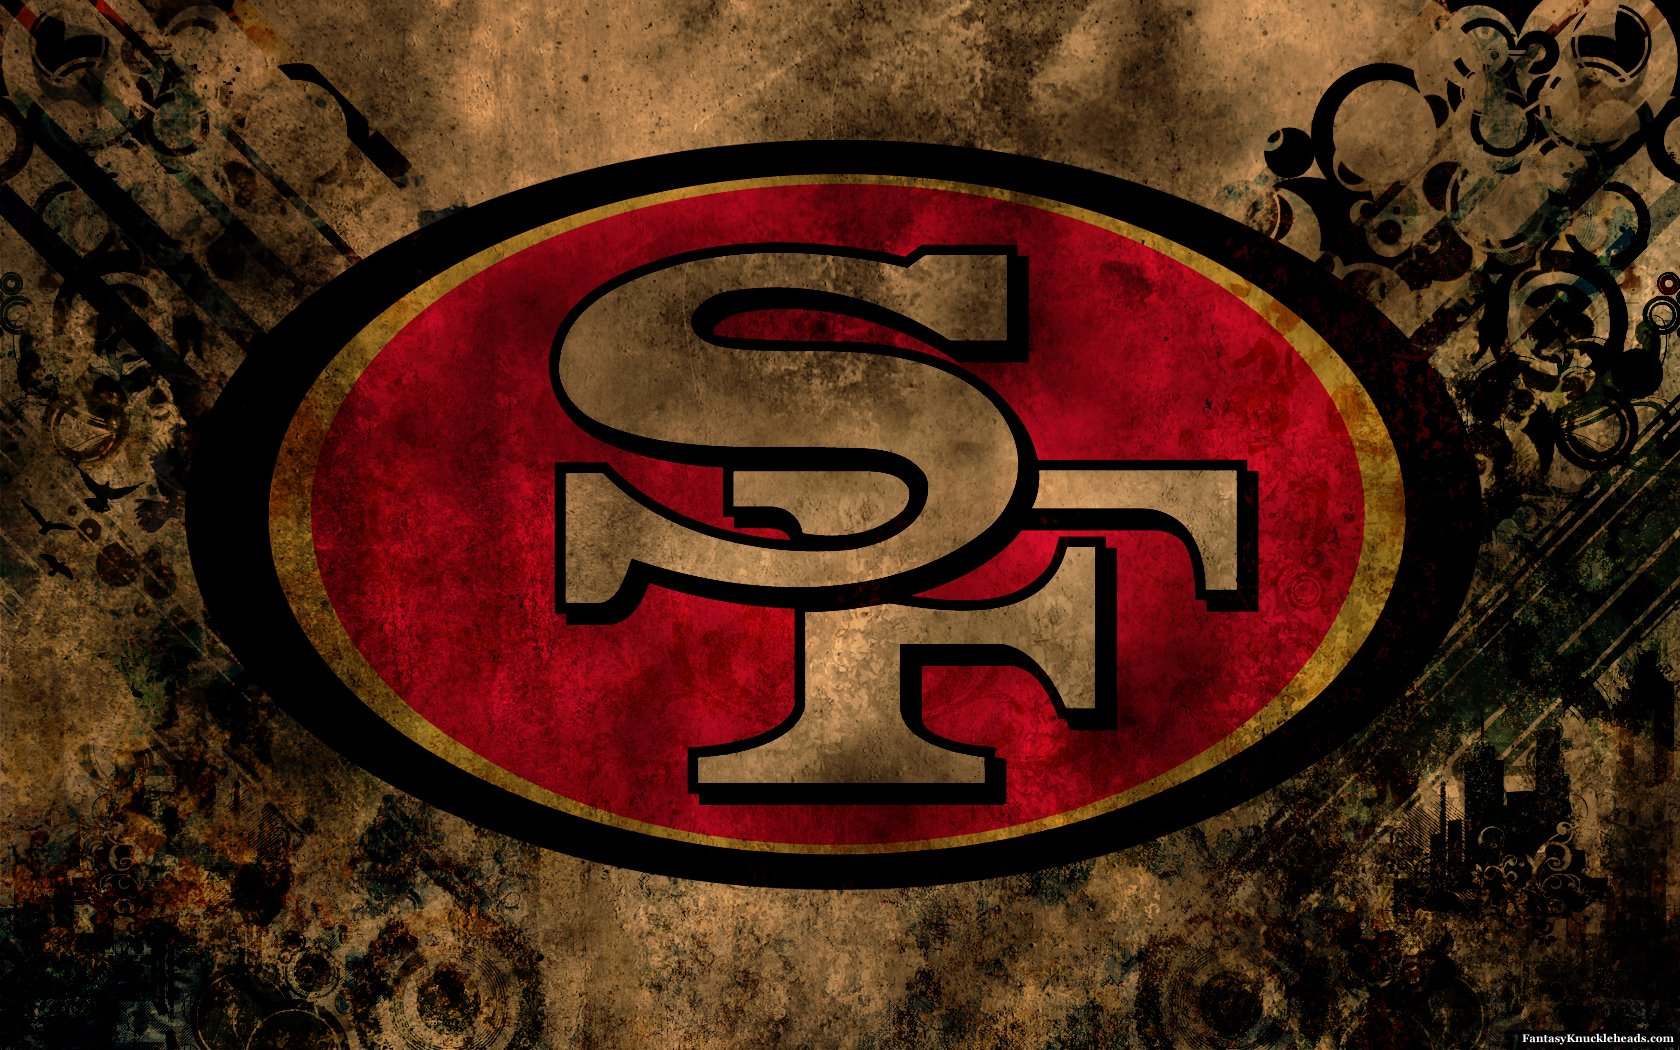 17e2f0b2 49+] Free 49er Wallpaper and Screensavers on WallpaperSafari